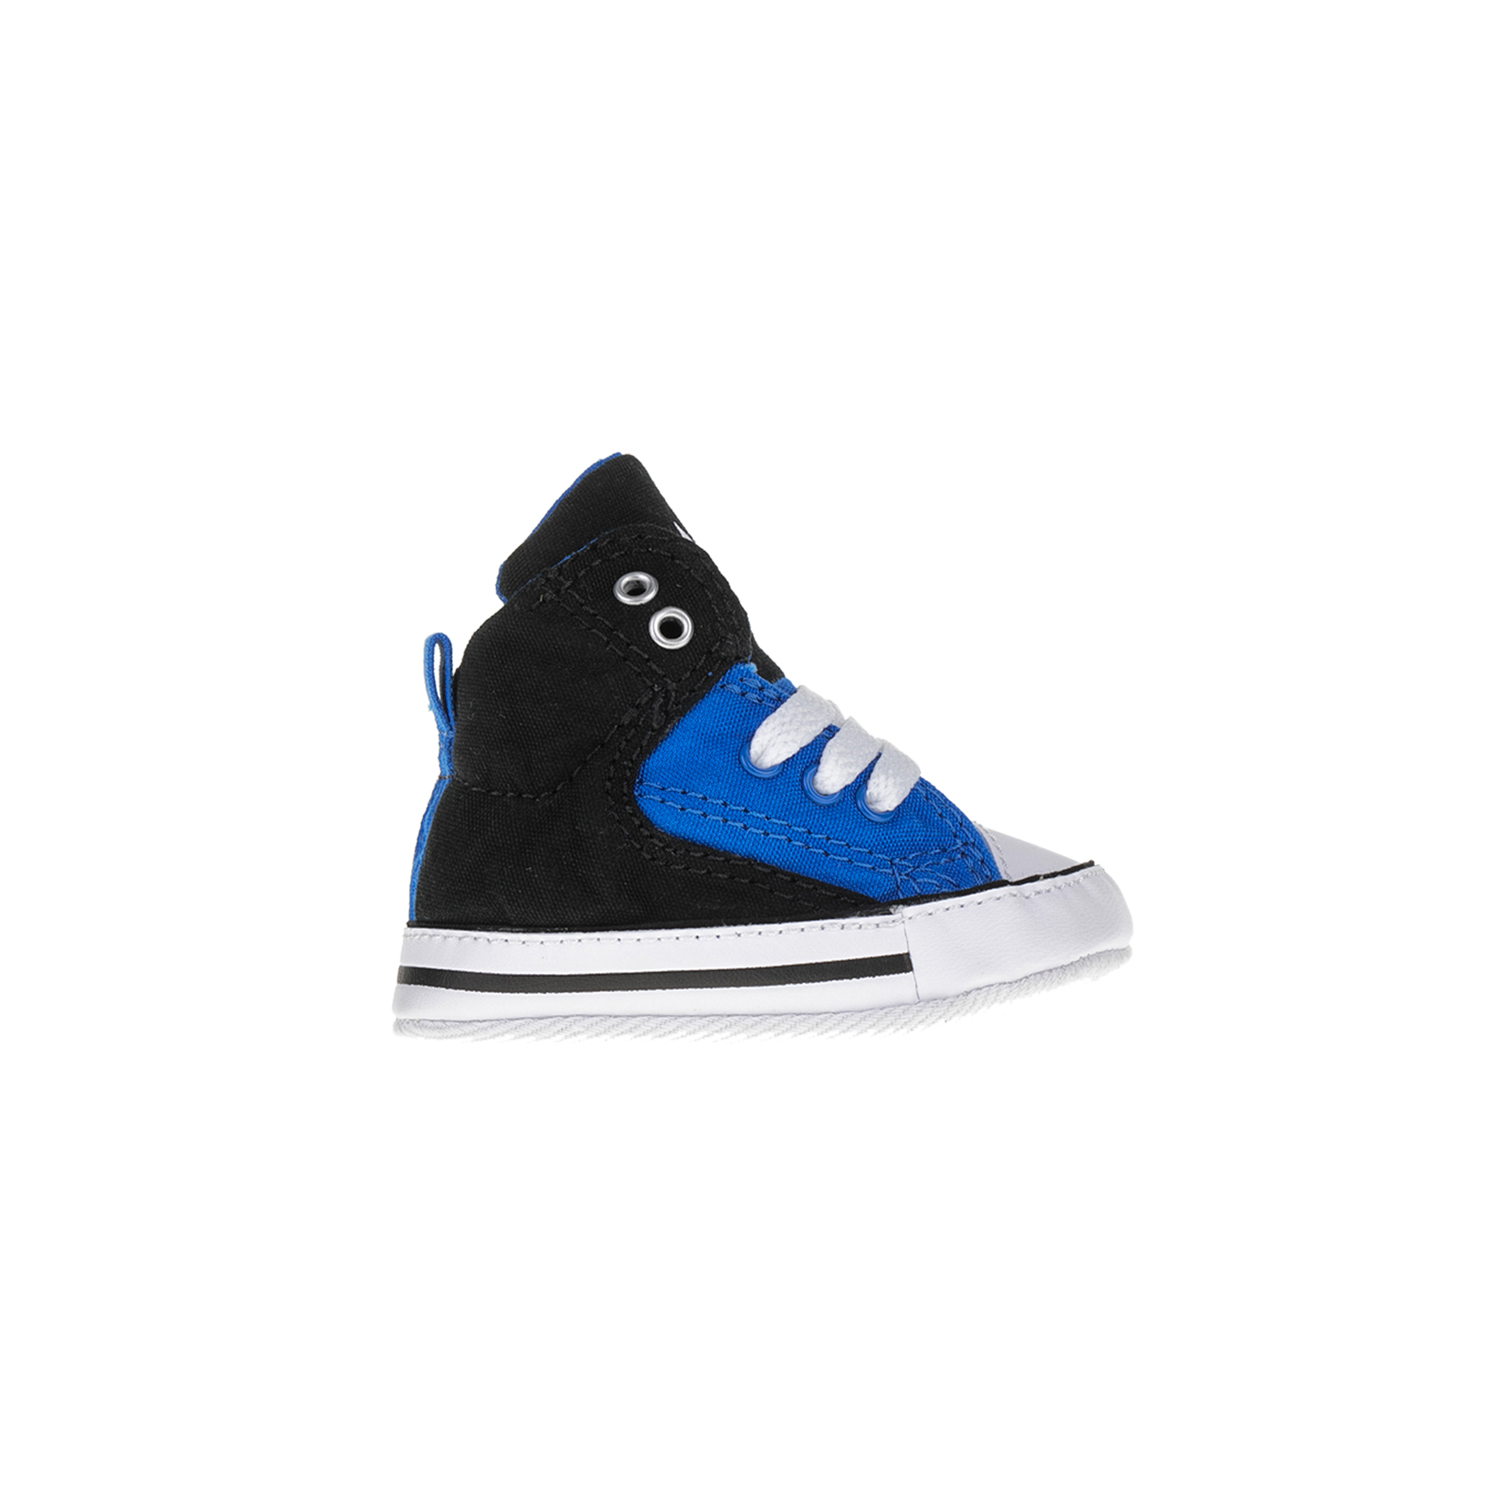 CONVERSE – Βρεφικά παπούτσια Chuck Taylor All Star First St μαύρα-μπλε